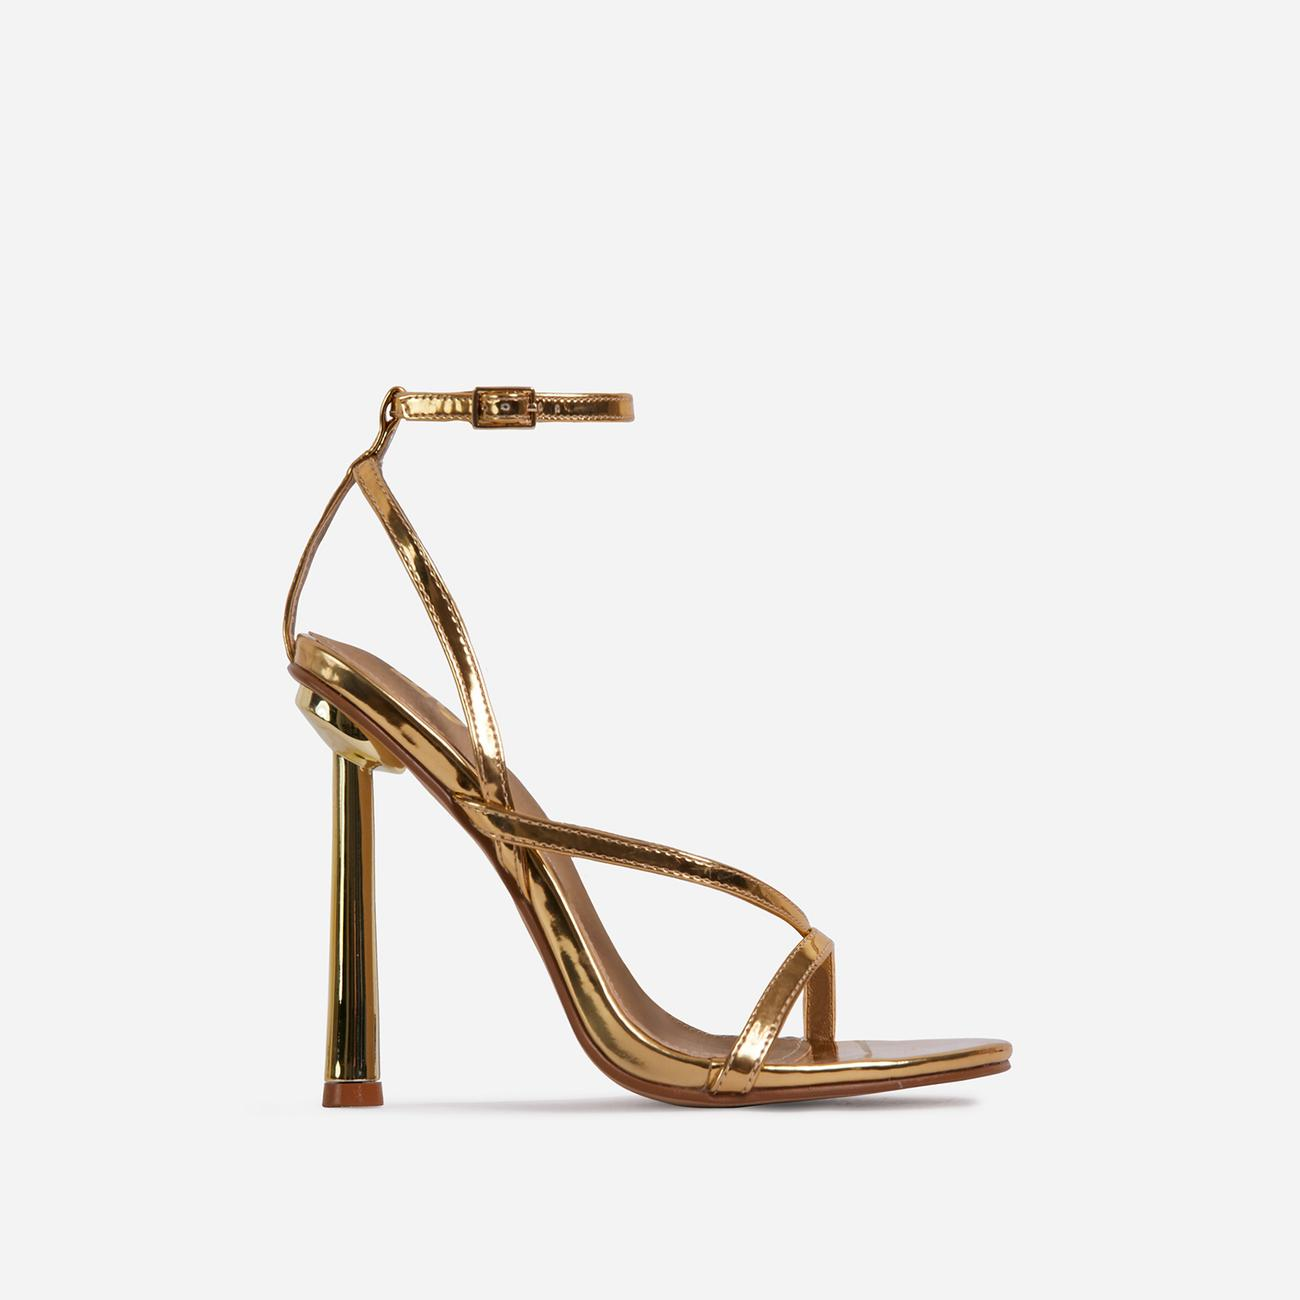 Yasmin Strappy Heel In Metallic Gold Faux Leather Image 1